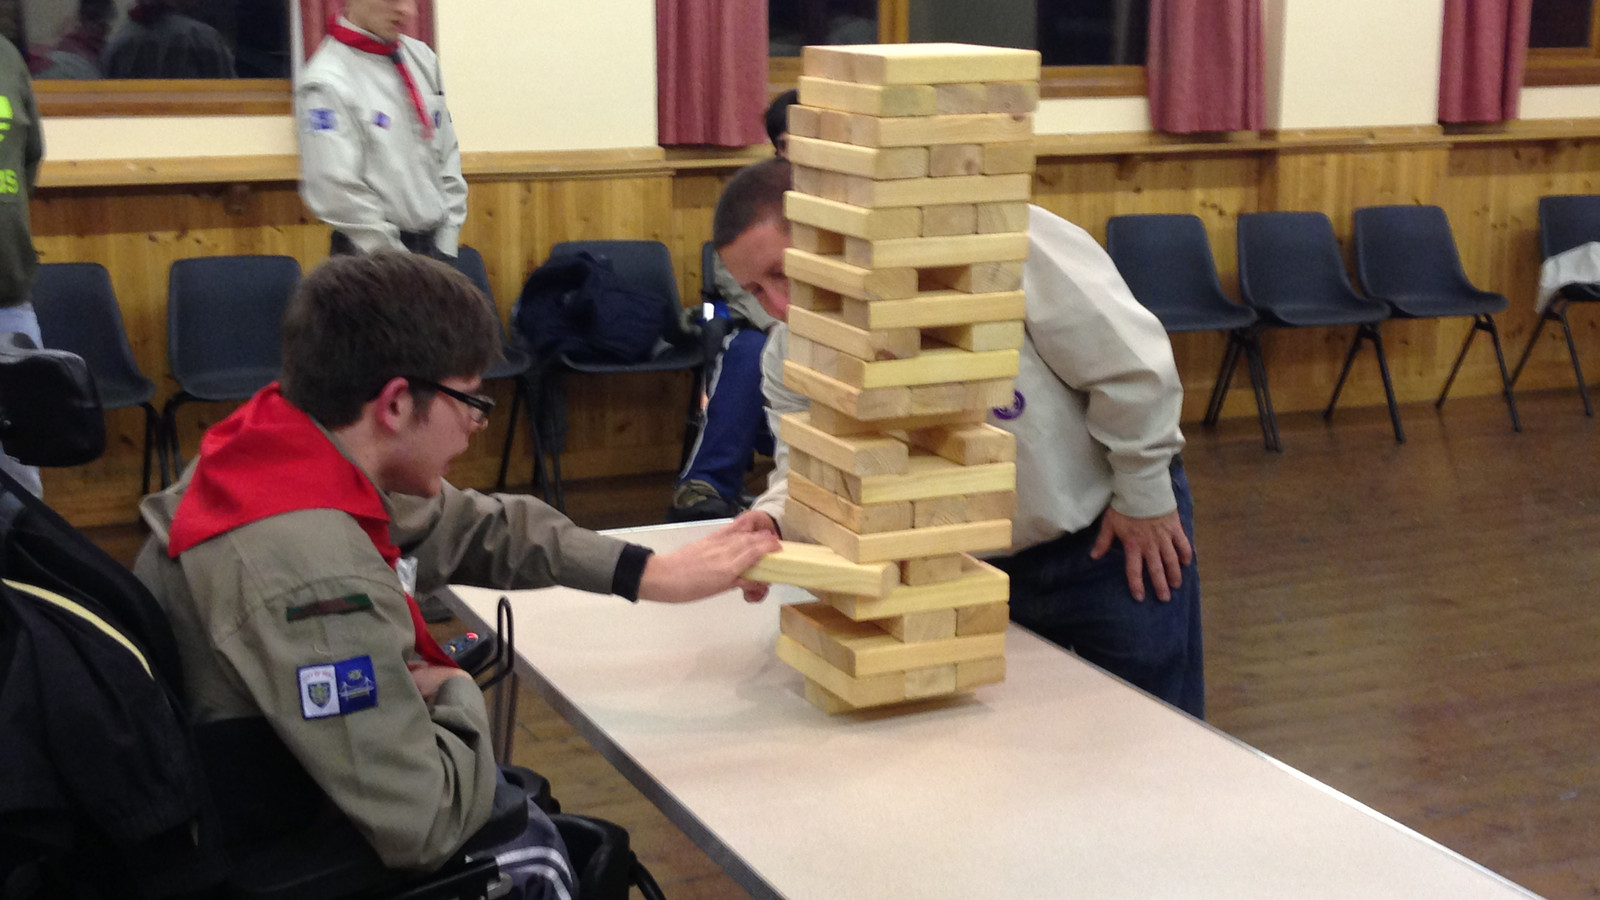 Playing Jenga